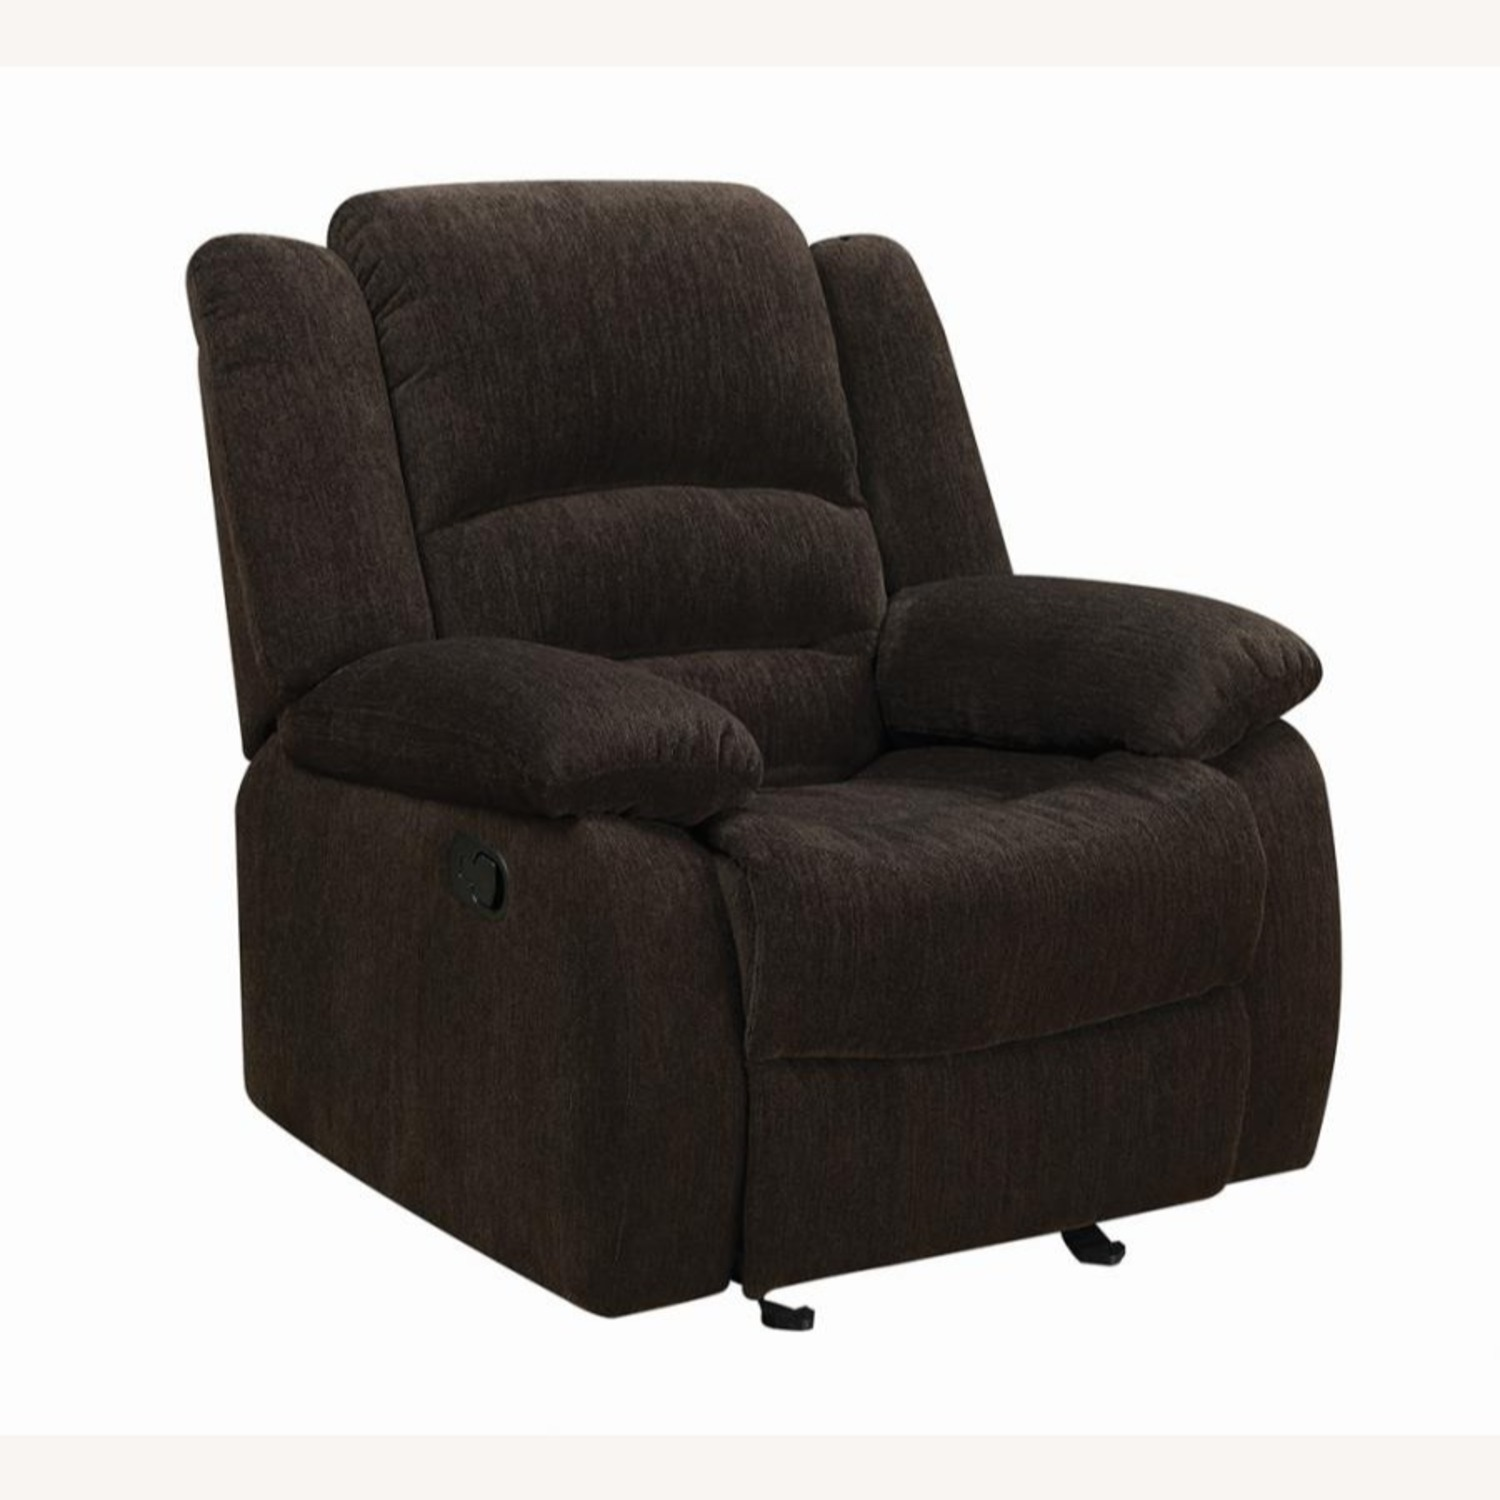 Glider Recliner In Chocolate Chenille Fabric - image-0